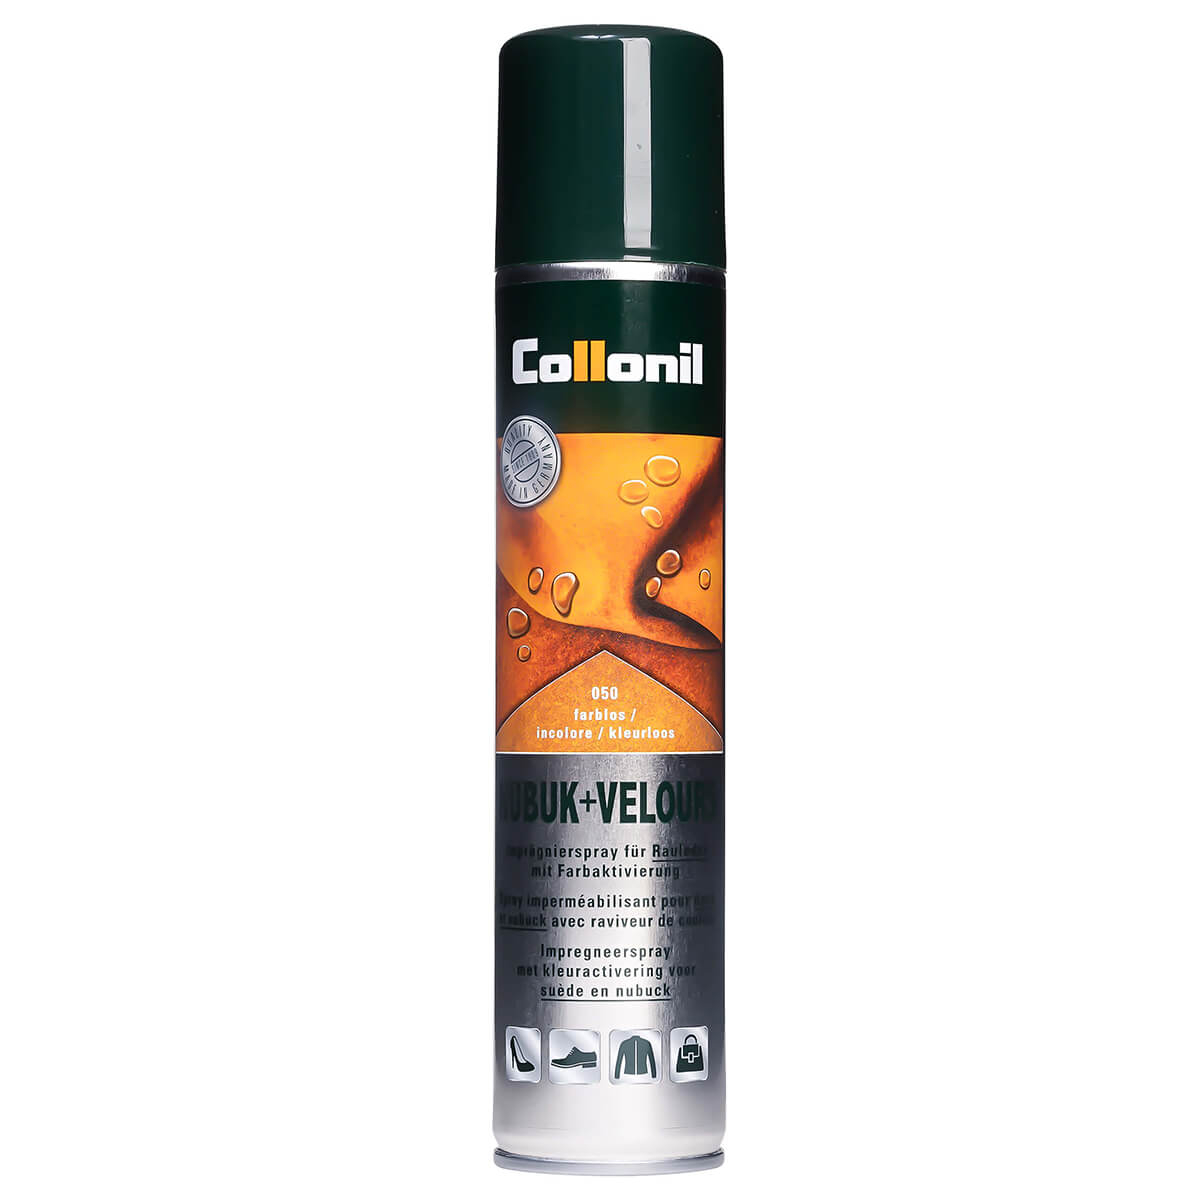 Collonil Spray NUBUK & VELOUR FARBLOS